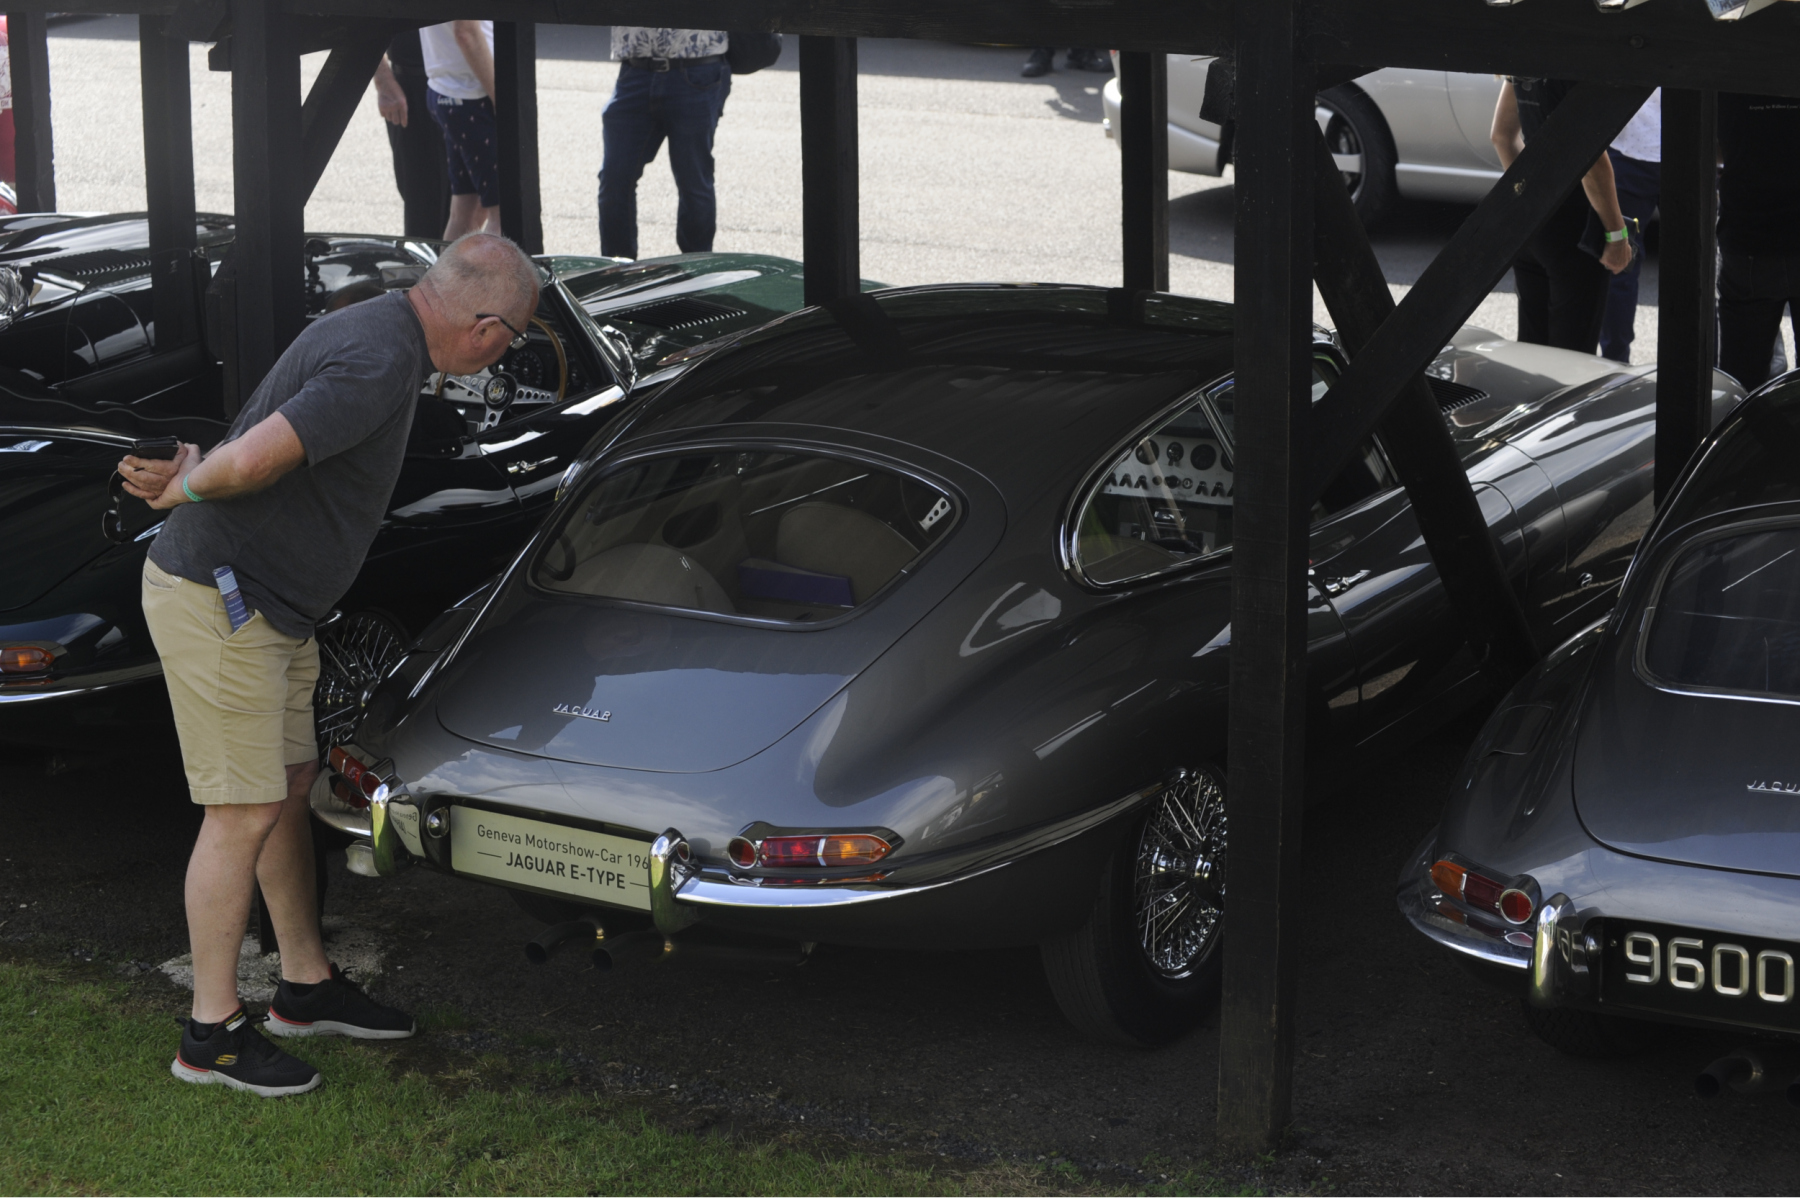 E-type-60-Saturday-photo-by-Abigail-Humphries-213